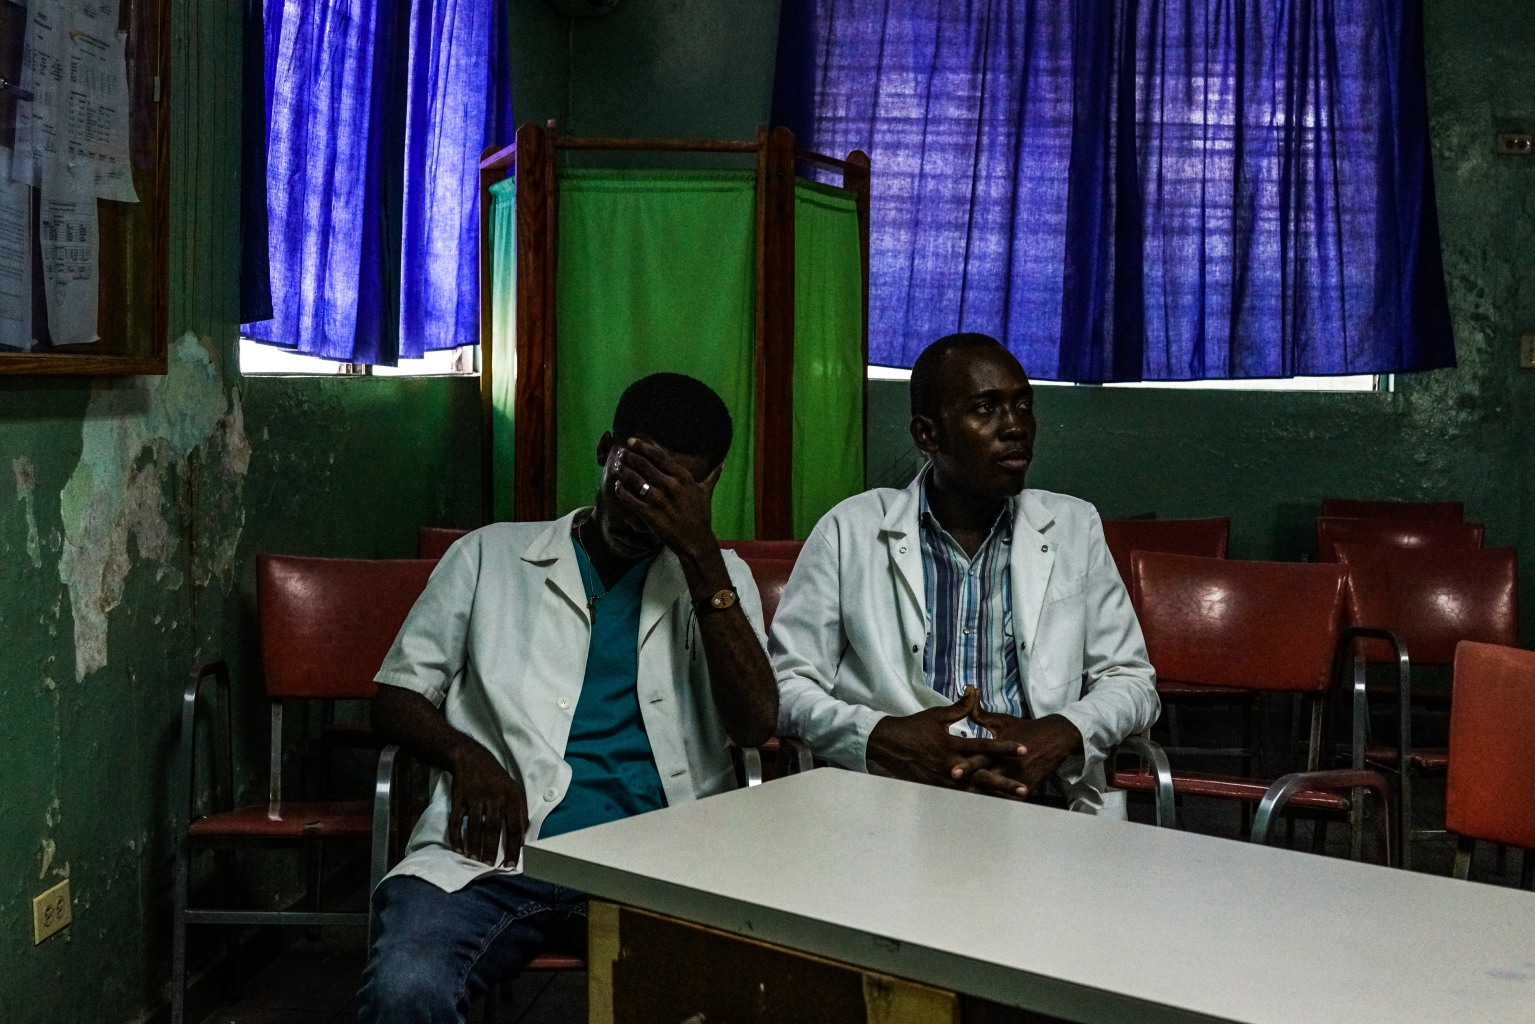 Junior doctors sit inside a room during a doctors' strike at a public hospital in Port-au-Prince, Haiti, on May 21. CHANDAN KHANNA/AFP/Getty Images